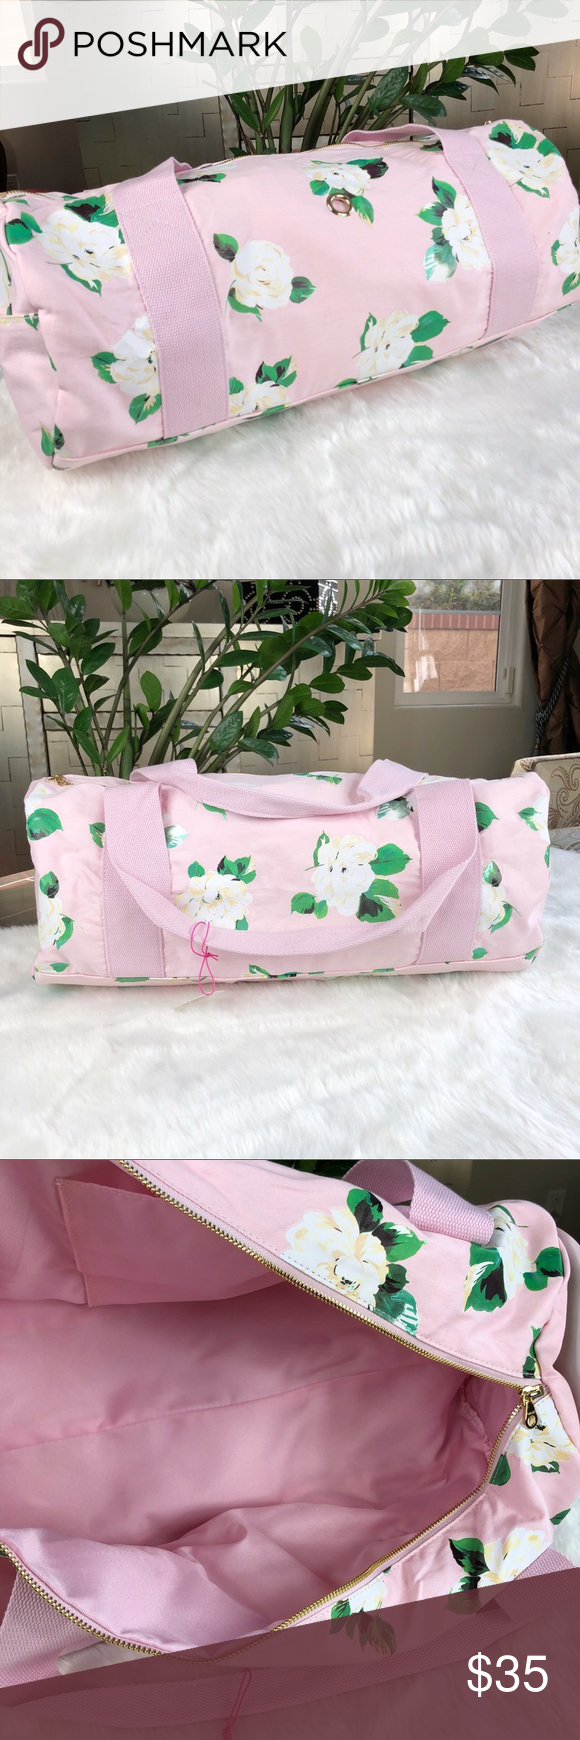 9ee2fc569ddd Bando Ban.do duffel gym bag lady of leisure pink Hard to find and sold out  everywhere. Ban.do work it out bag in Lady of Leisure print.